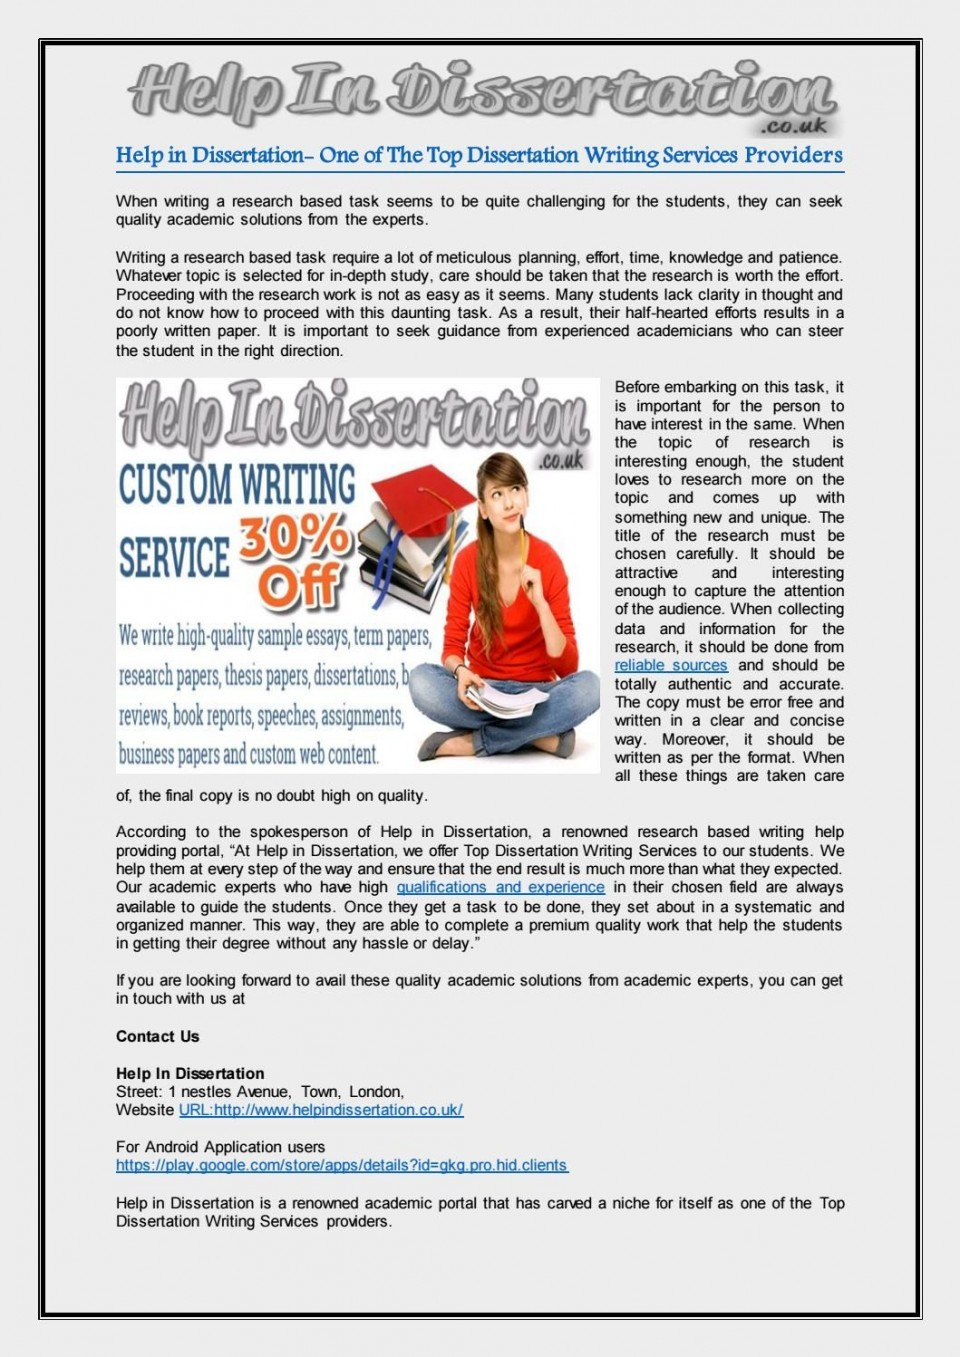 027 Research Paper Best Fearsome Websites Top Writing 960